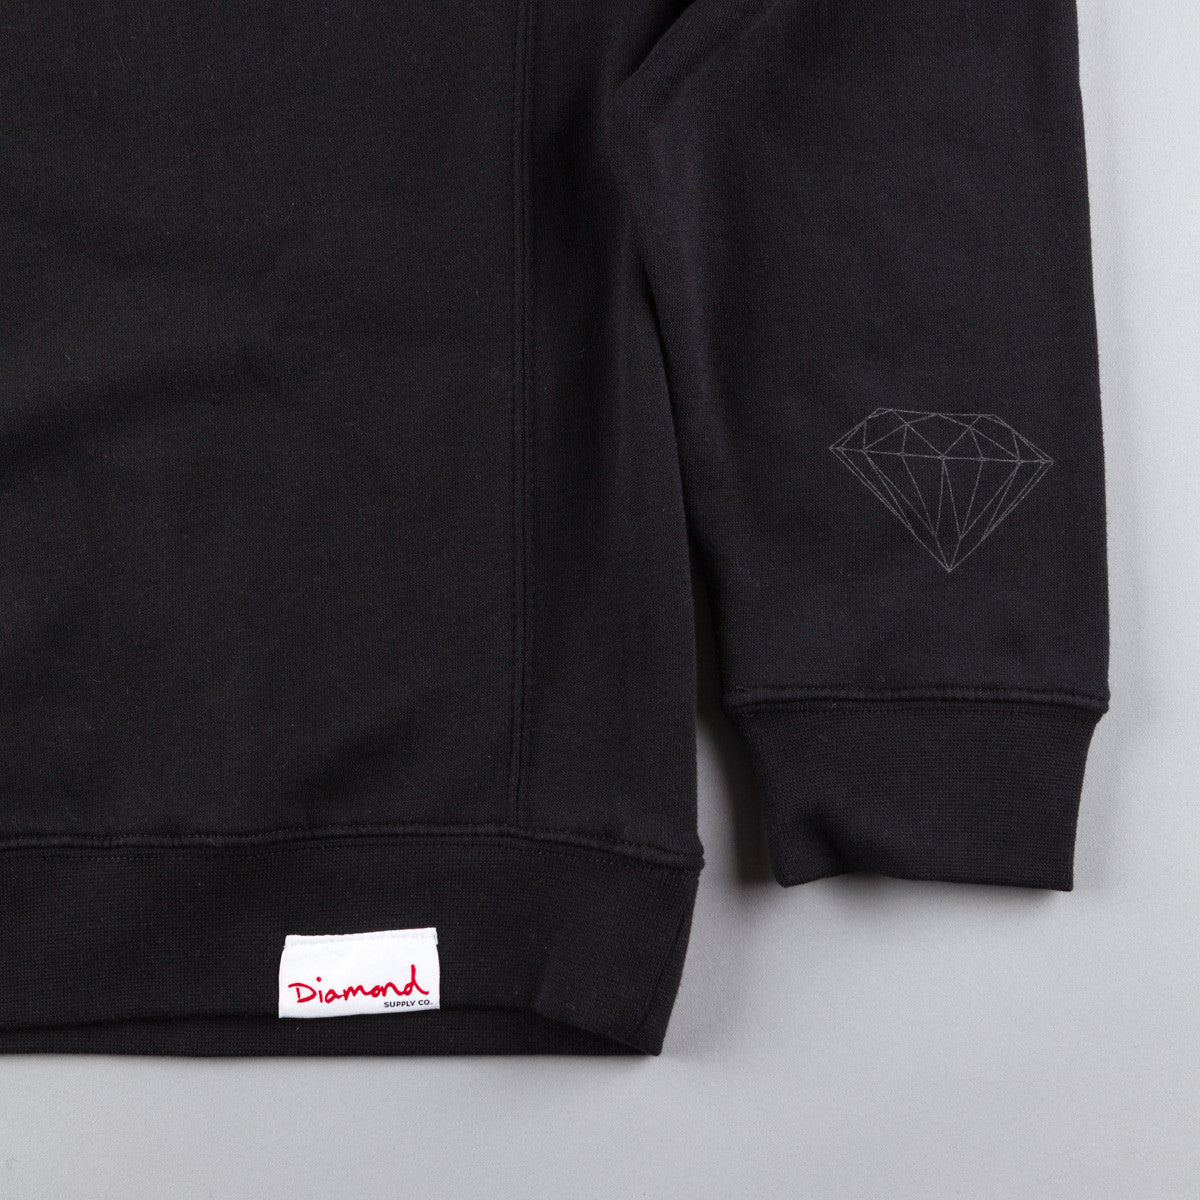 Diamond Tonal Crewneck Sweatshirt - Black